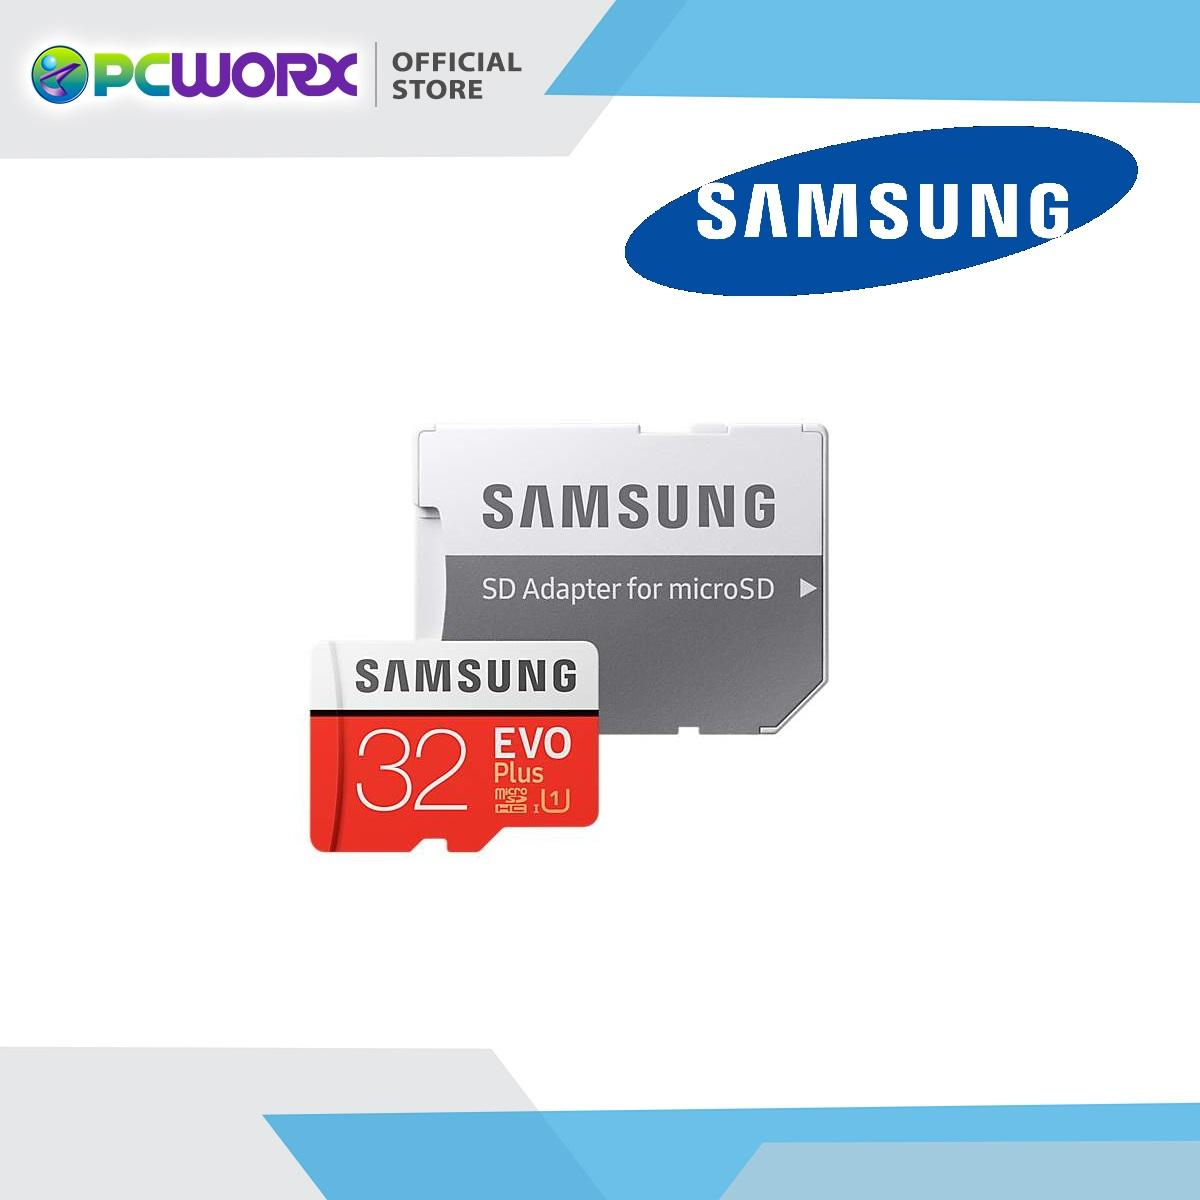 543d8ff82c6 Camera MicroSD. 6882 items found in Micro SD Cards. Samsung EVO Plus Micro  SDHC 32GB UHS-I Class 10 MB-MC32GA with Adapter